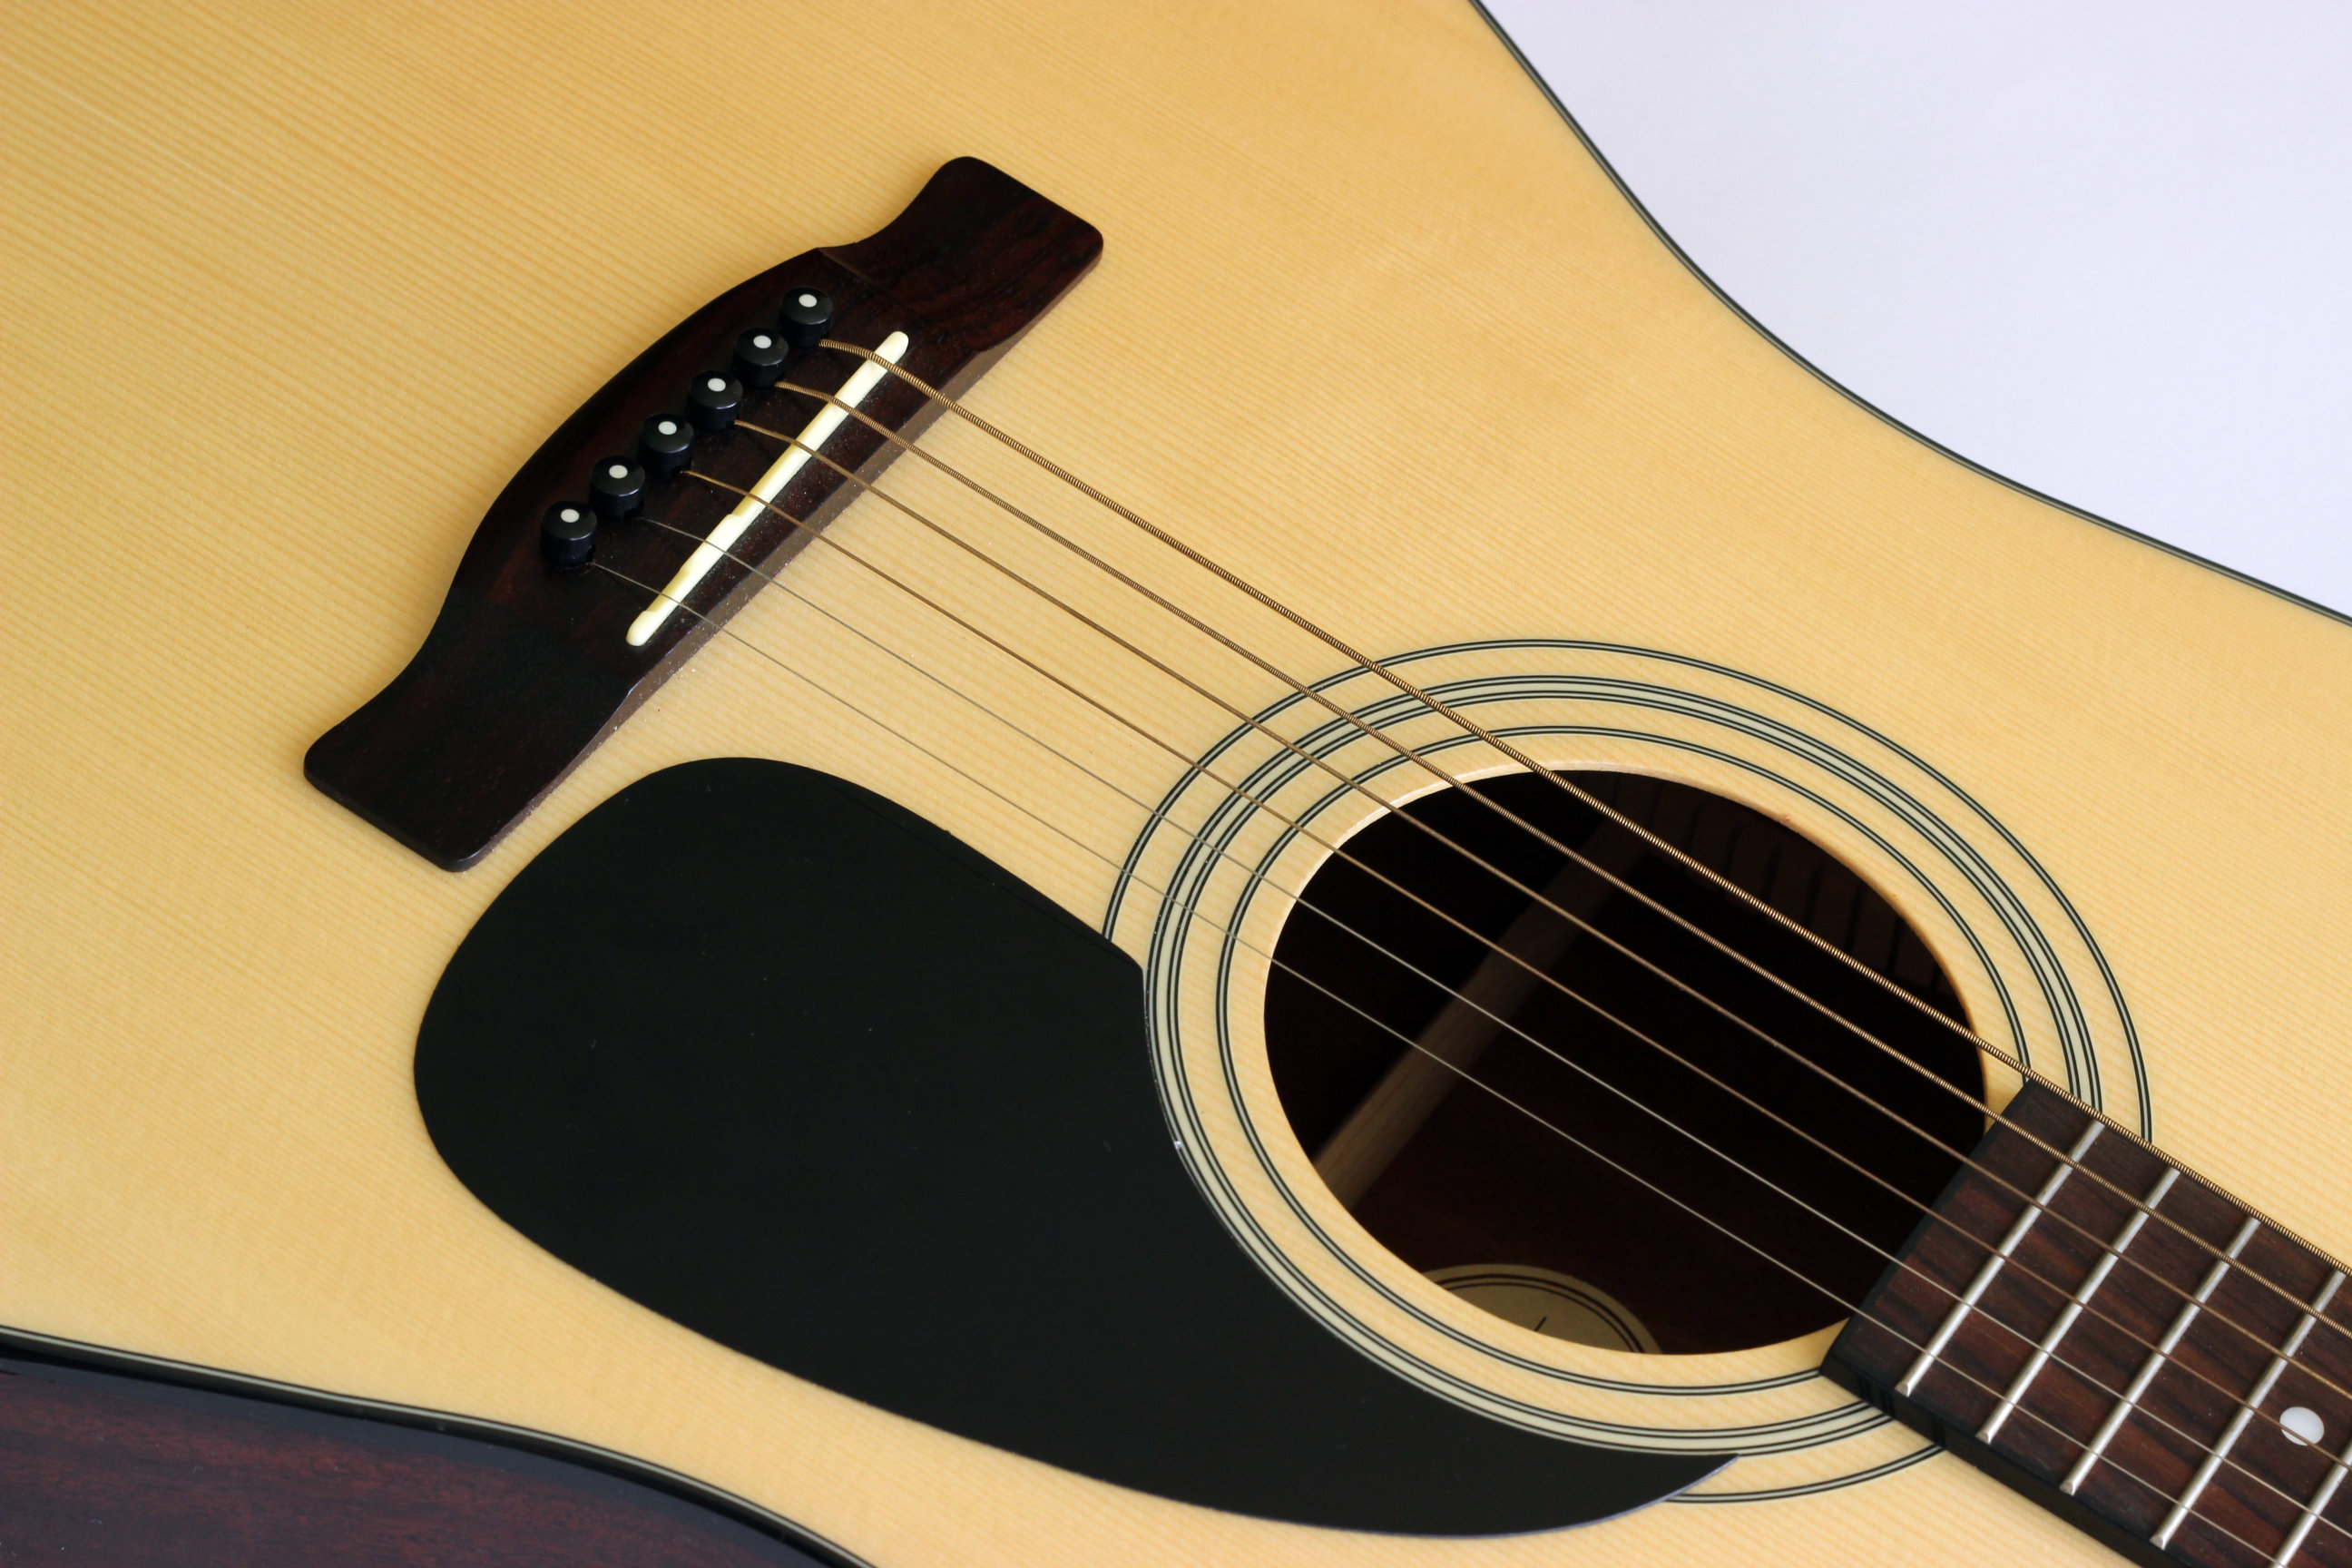 Learn Guitar Strings : learn to play guitar like james taylor guitar notes for beginners hq ~ Russianpoet.info Haus und Dekorationen